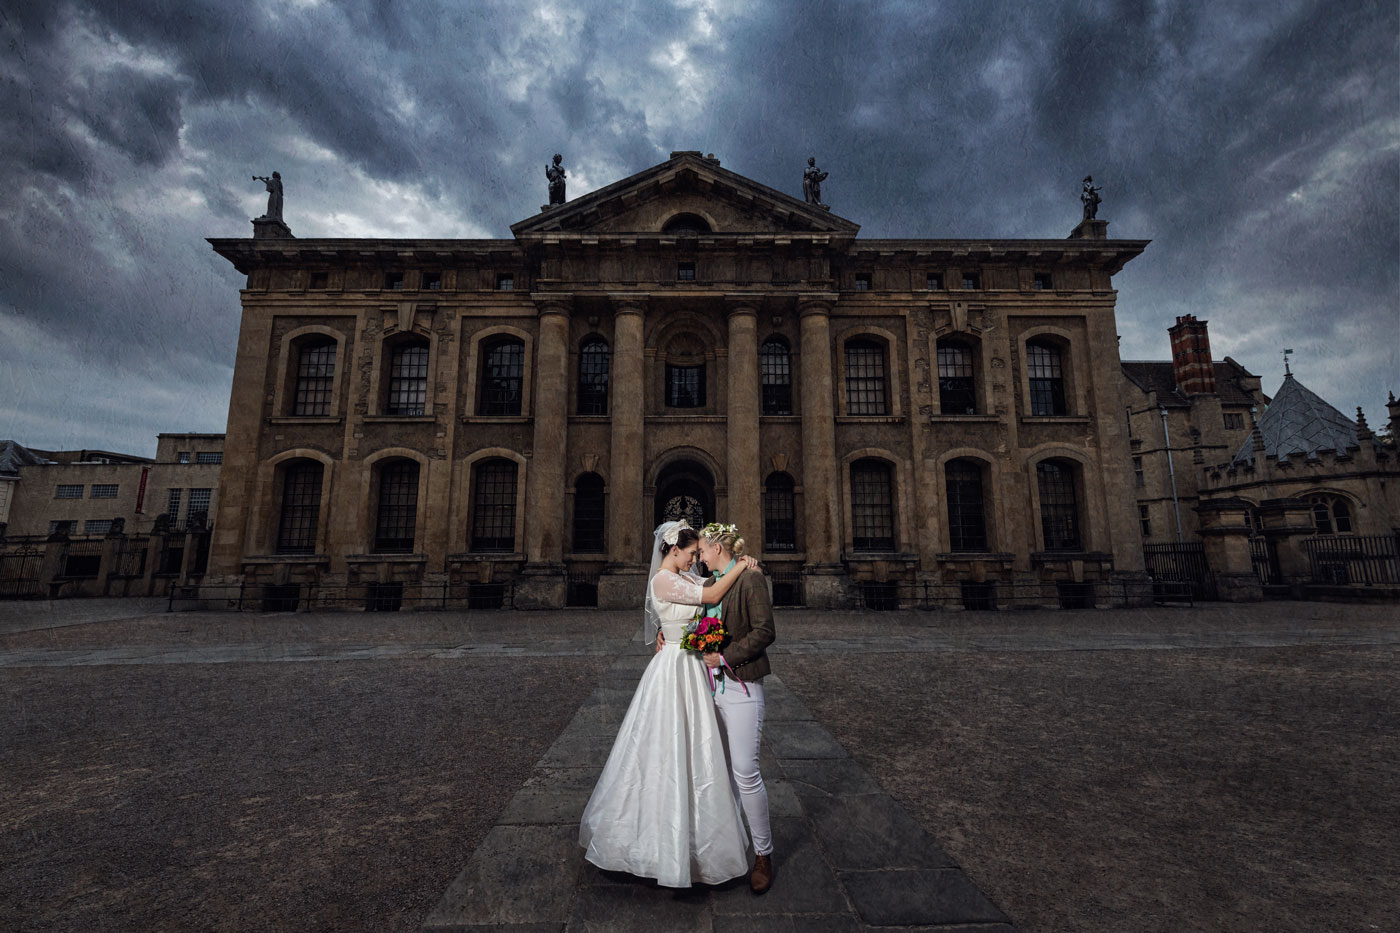 Fine art wedding photography at the Bodleian Library